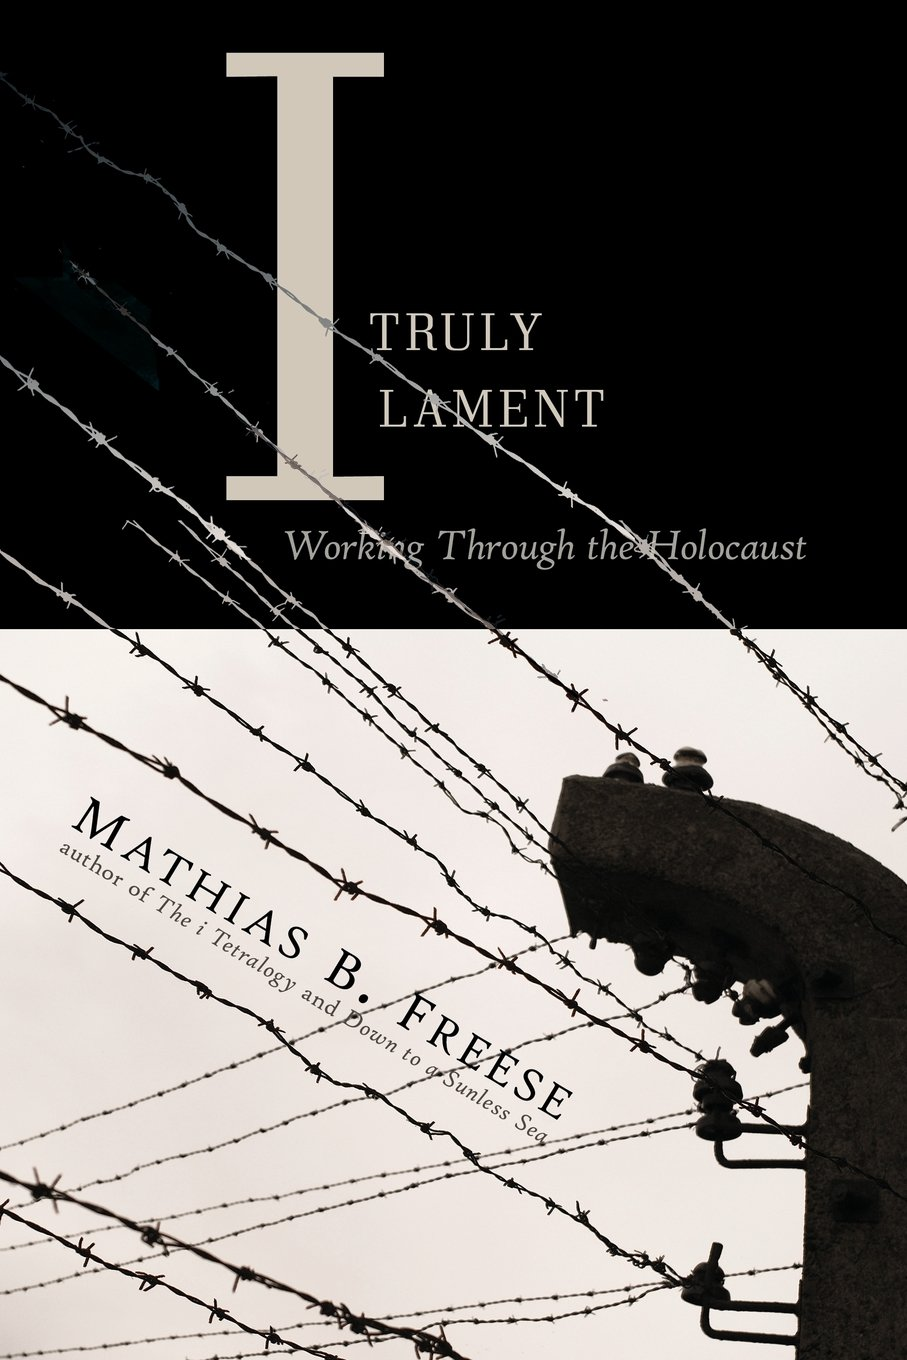 I Truly Lament: Working Through the Holocaust by Mathias Freese